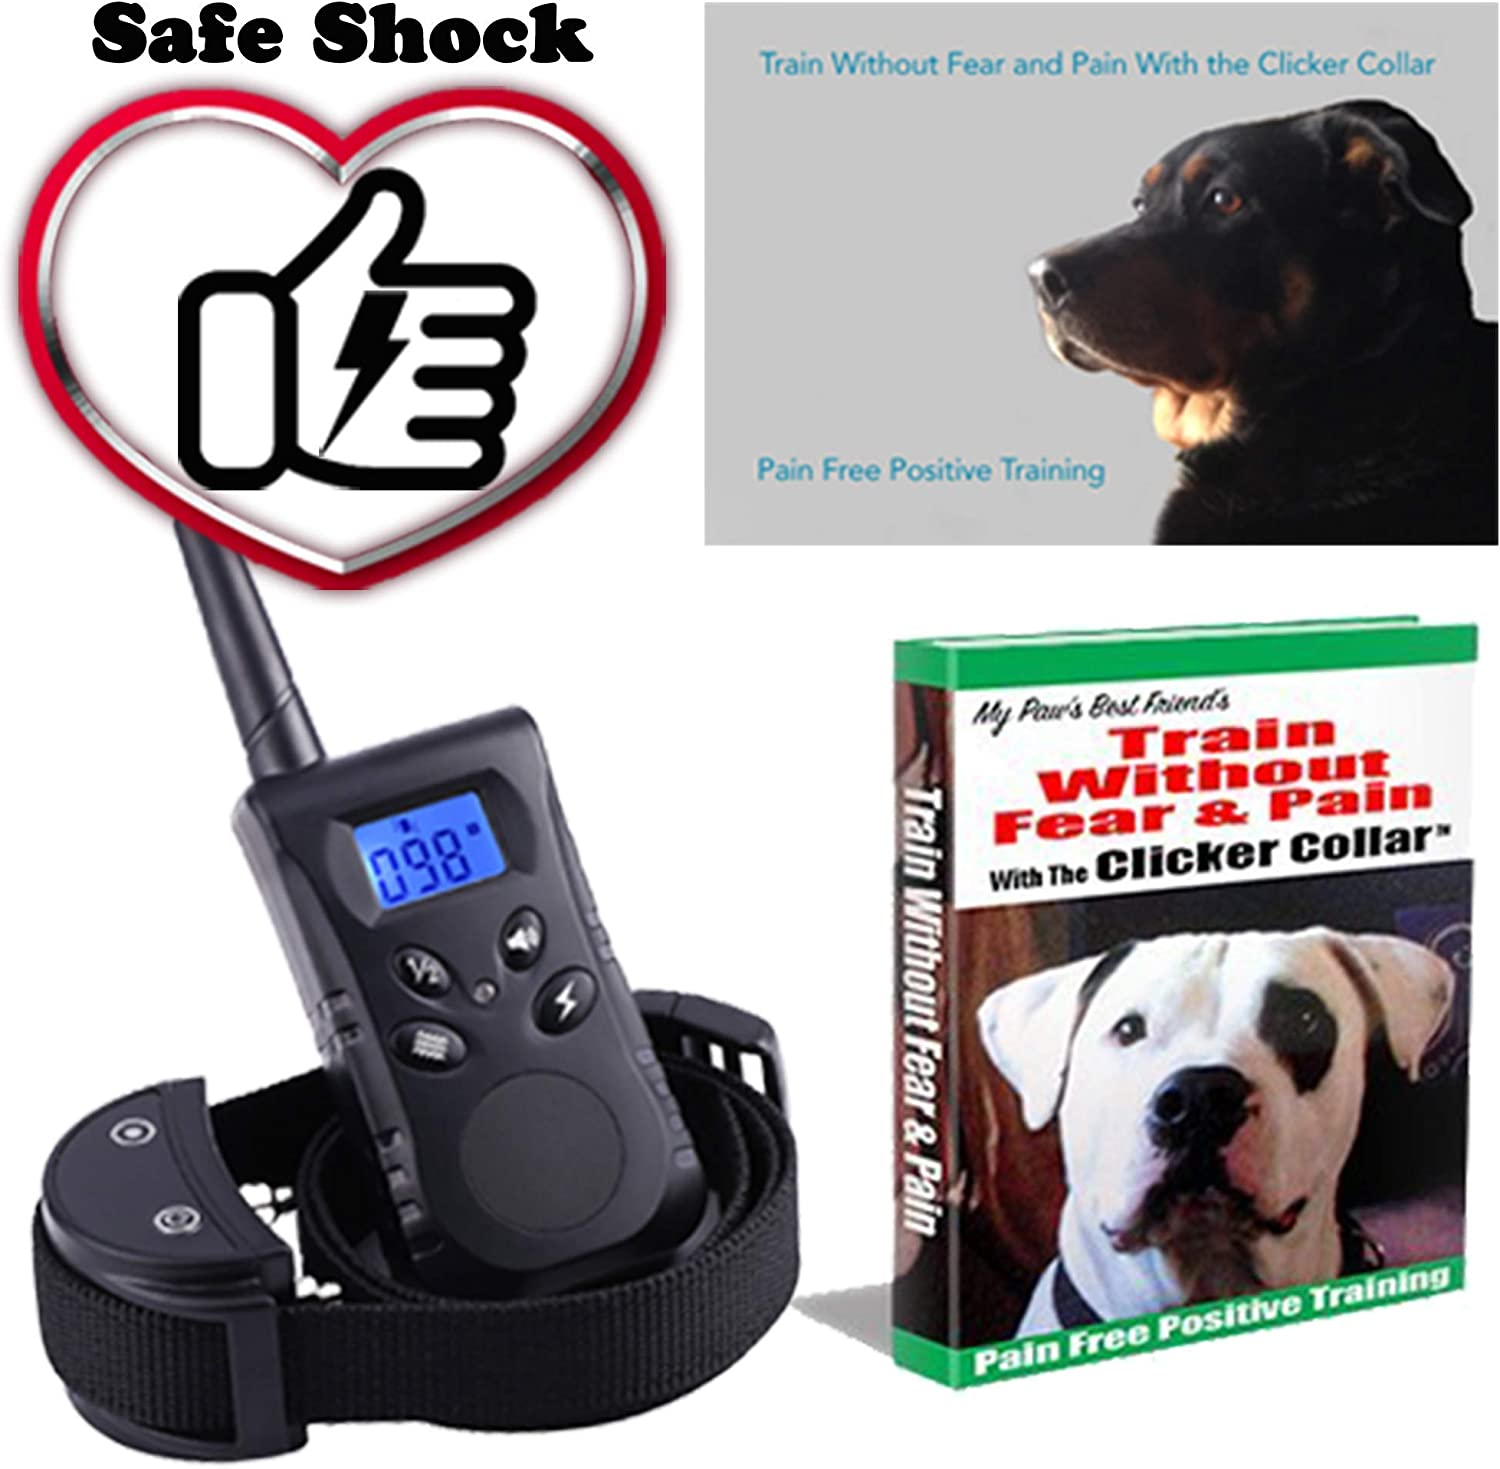 Dog Training Collar Bundle.  1 Rated. How to Train Your Dog Lessons, How to Train a Dog Ebook, Dog Shock Collar Owners Manual and 24 7 365 Phone Support on How to Train Your Dog. If you Dont Like It Ill Buy It Back From You